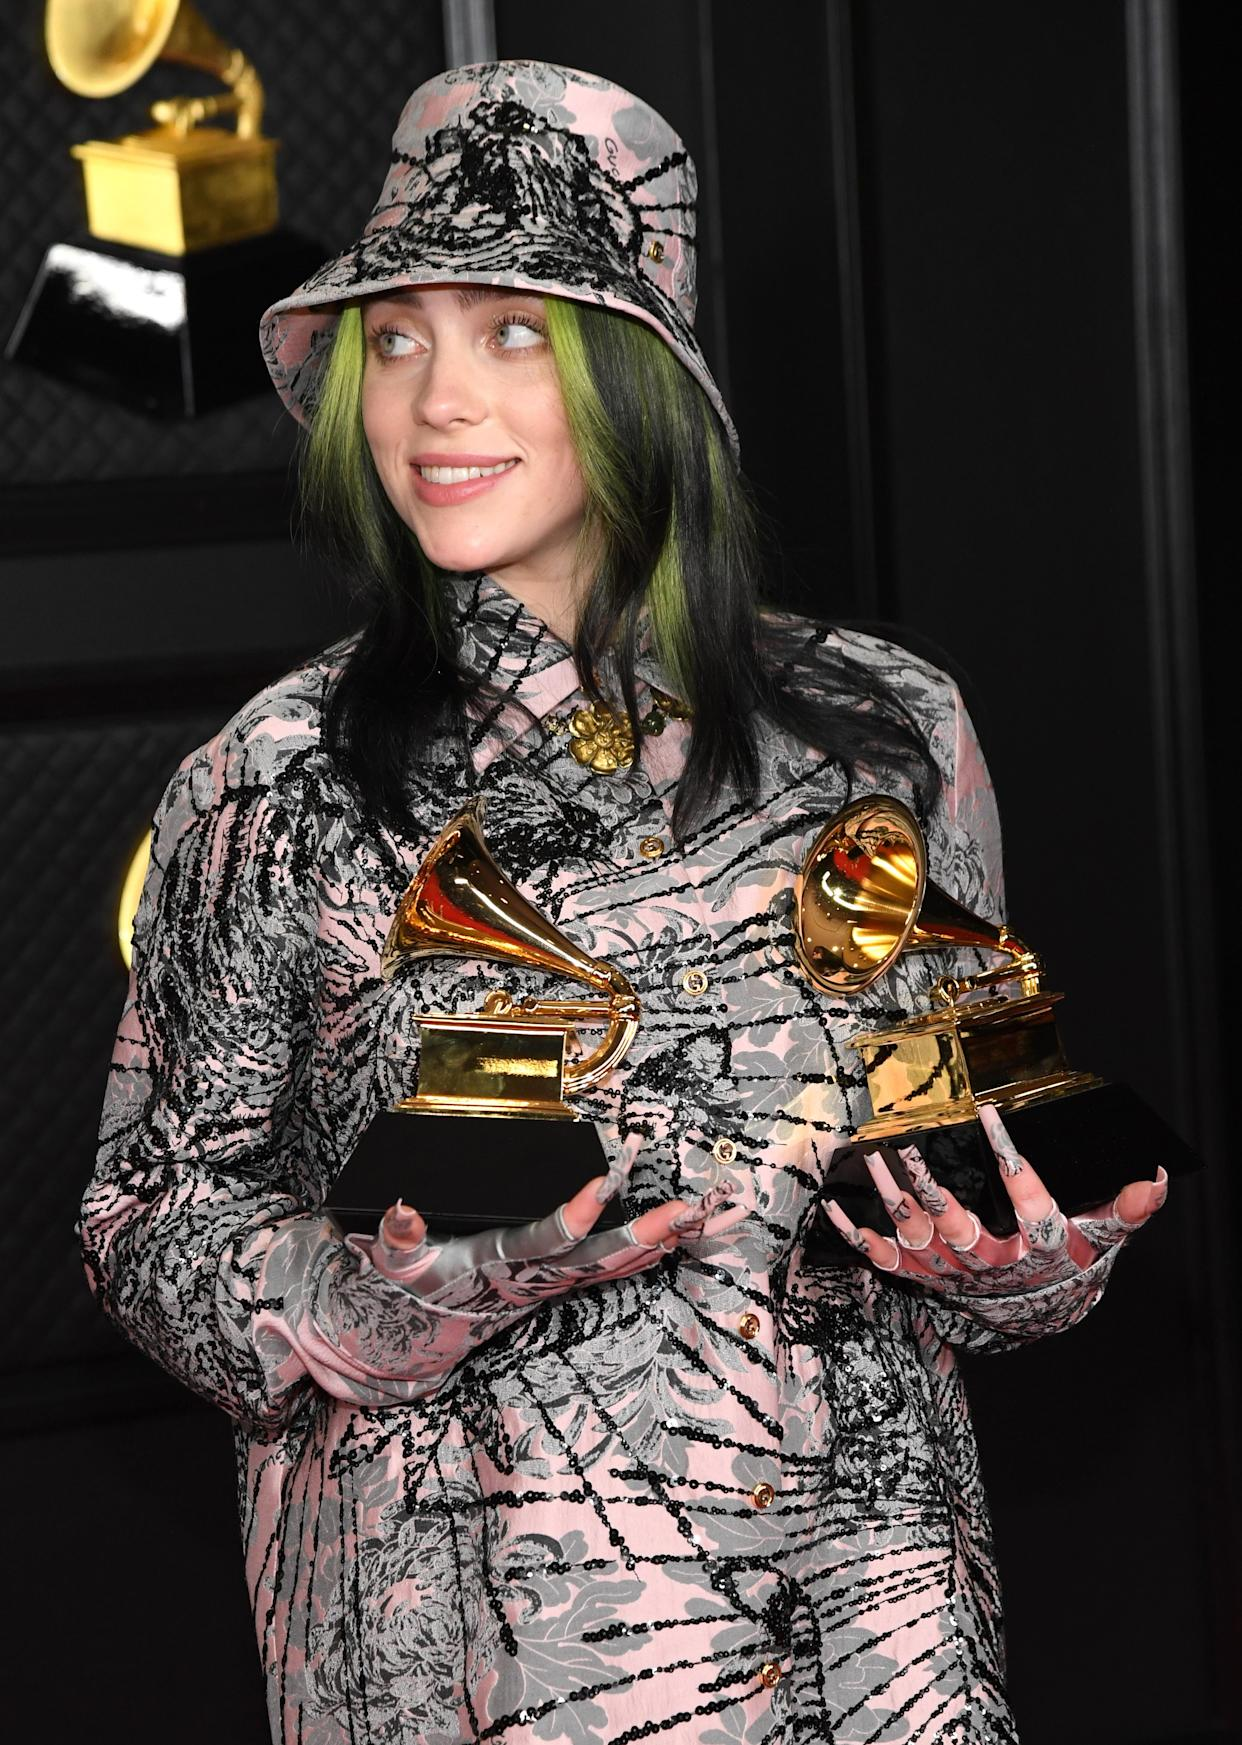 Billie Eilish, seen here at the 63rd Annual GRAMMY Awards in March, is being called out for